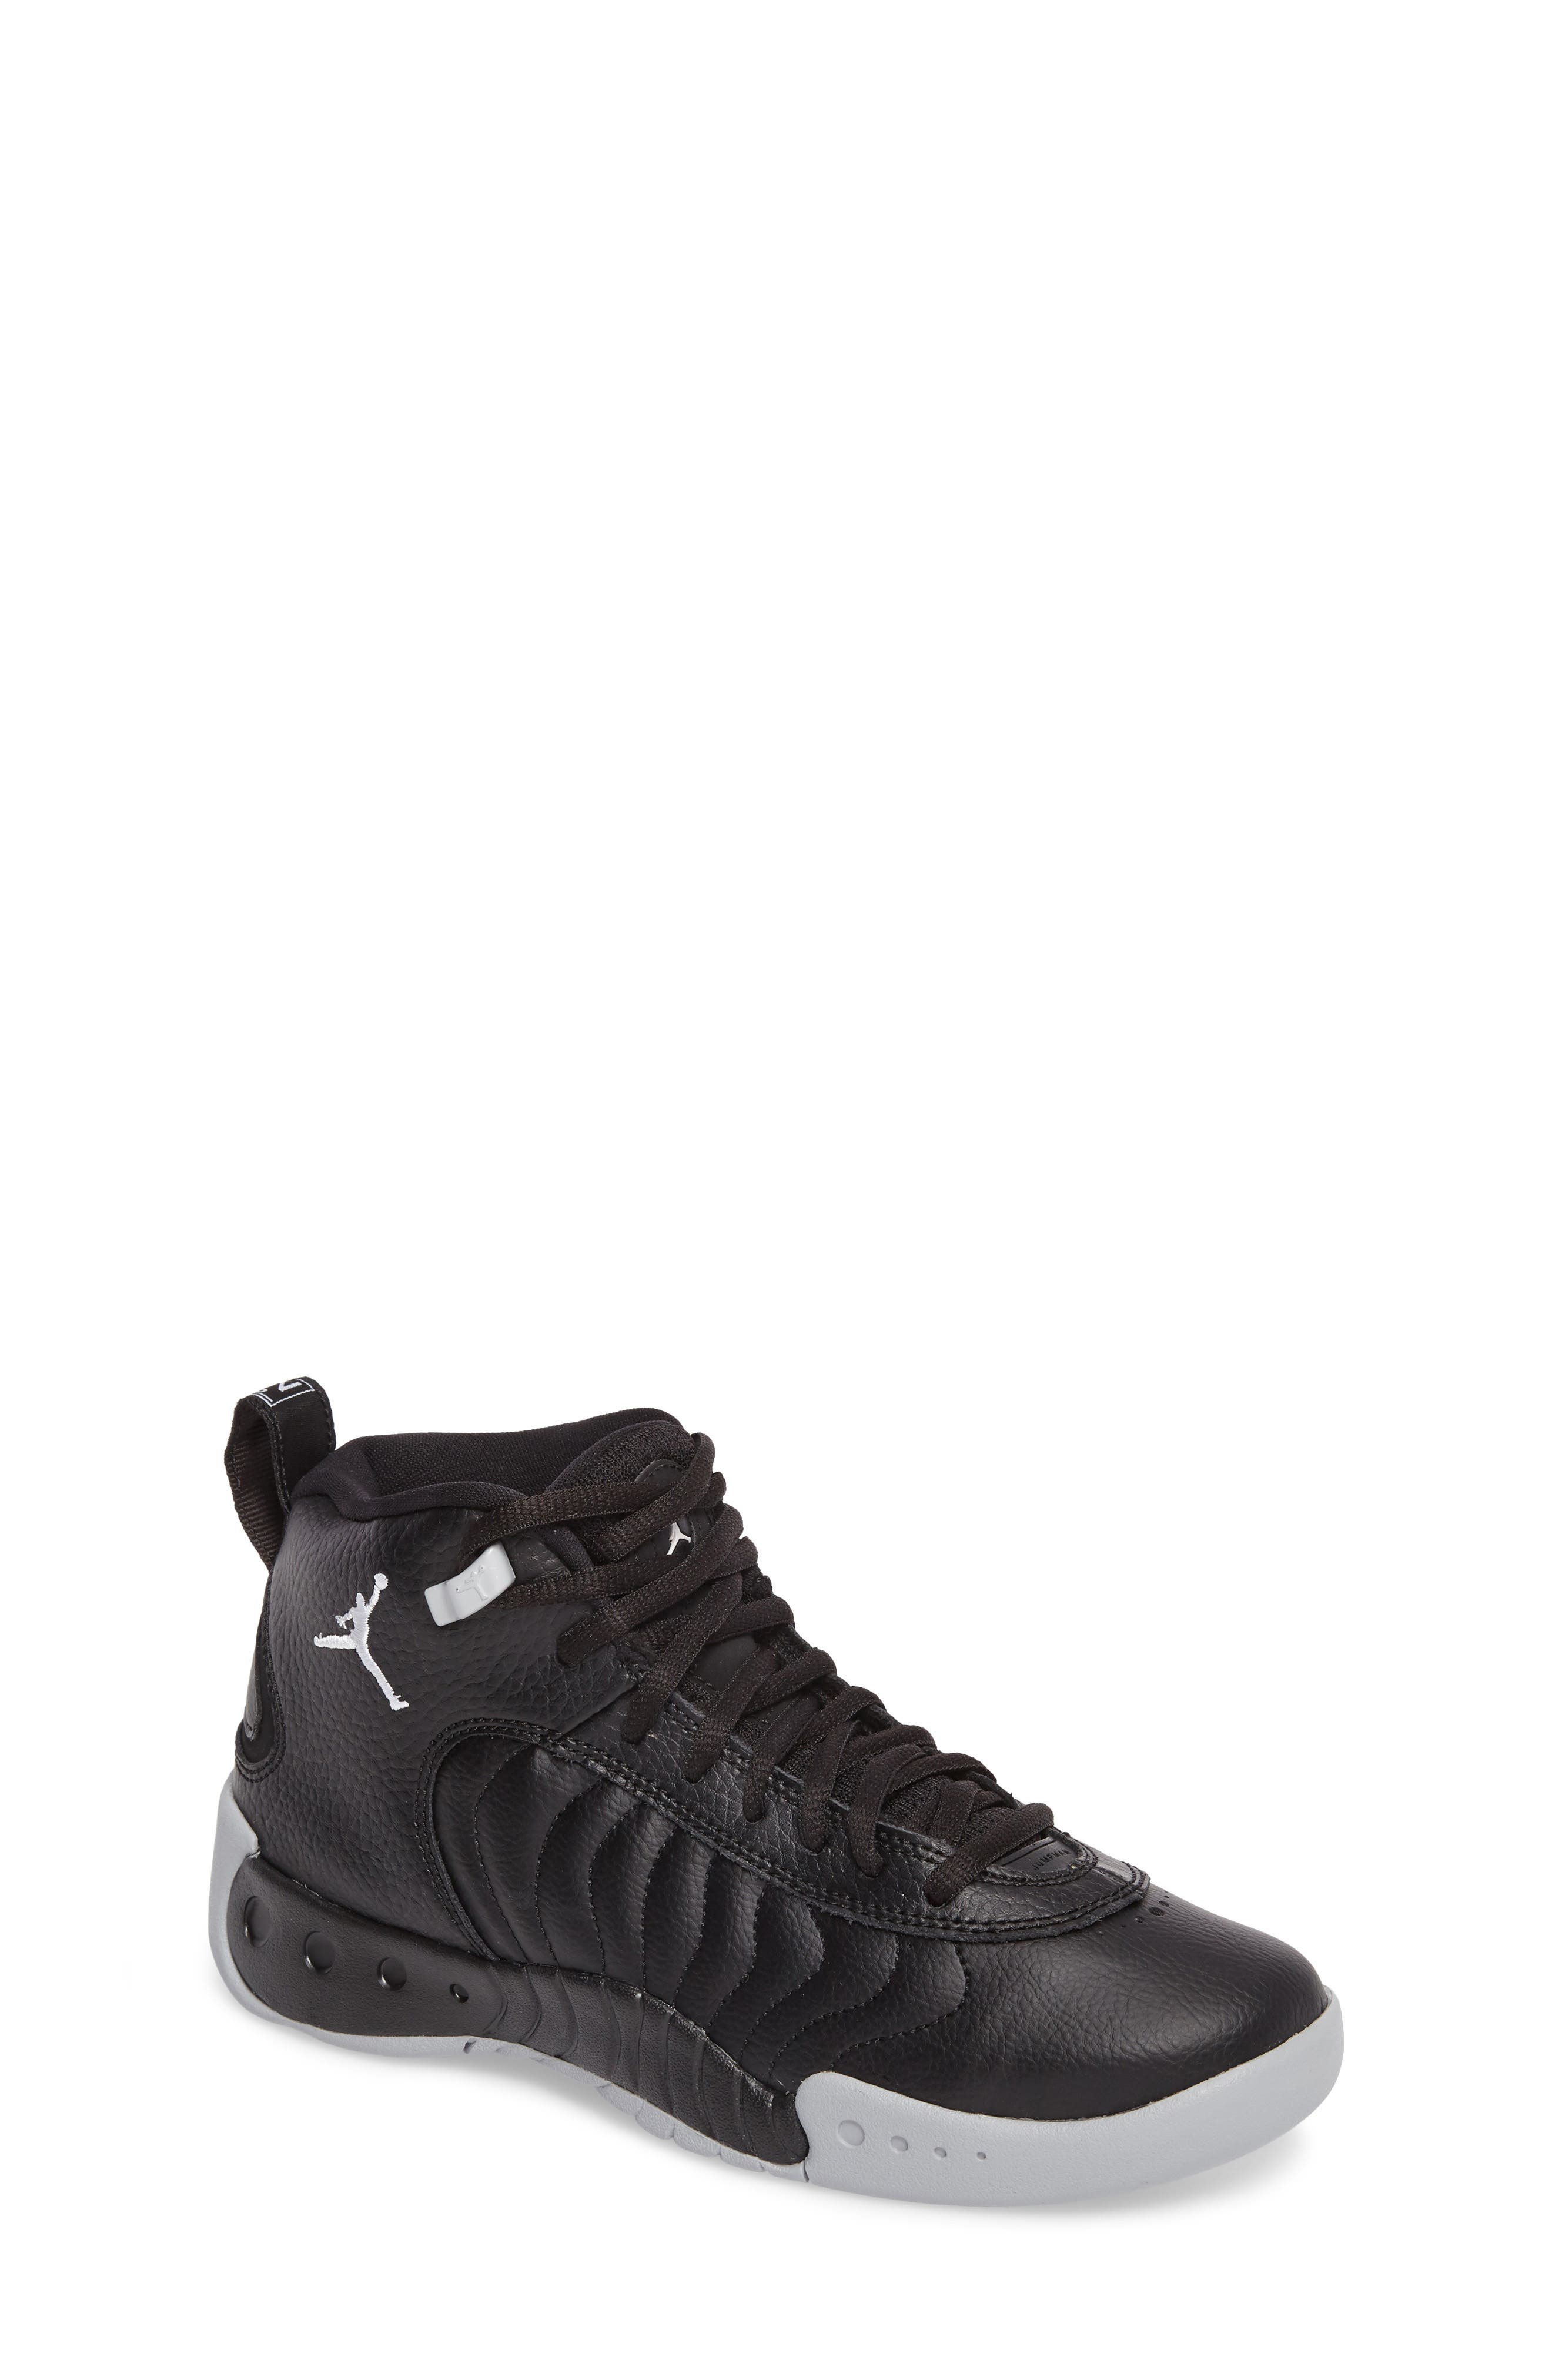 Jumpman Pro BG Mid Top Sneaker,                         Main,                         color, Black/ White-Wolf Grey